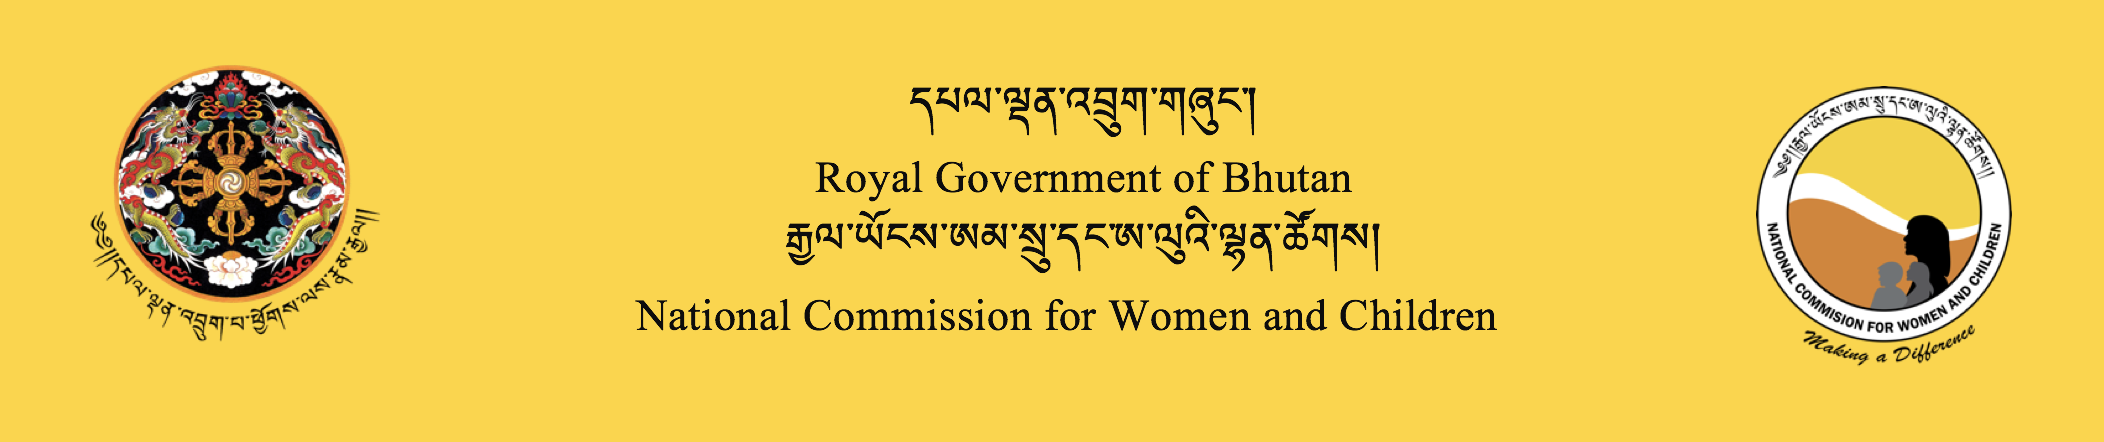 National Commission for Women and Children